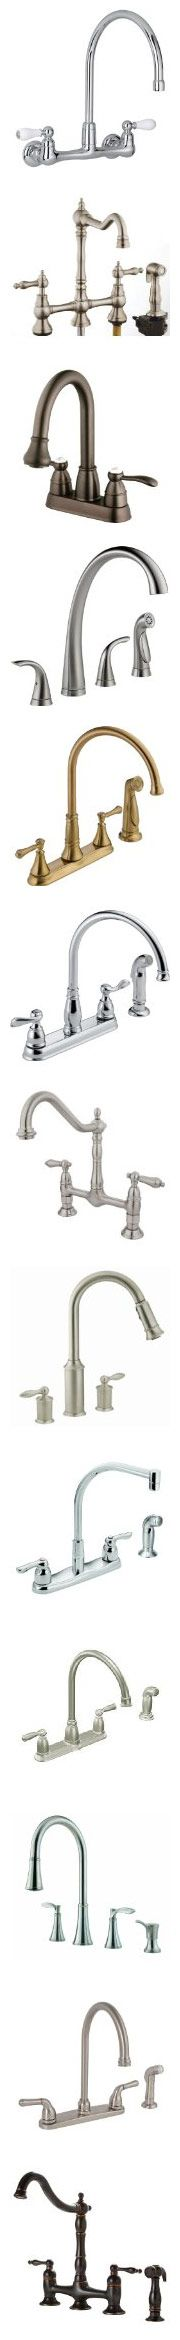 Kitchen Faucet Comparison For Different Type Of Faucets